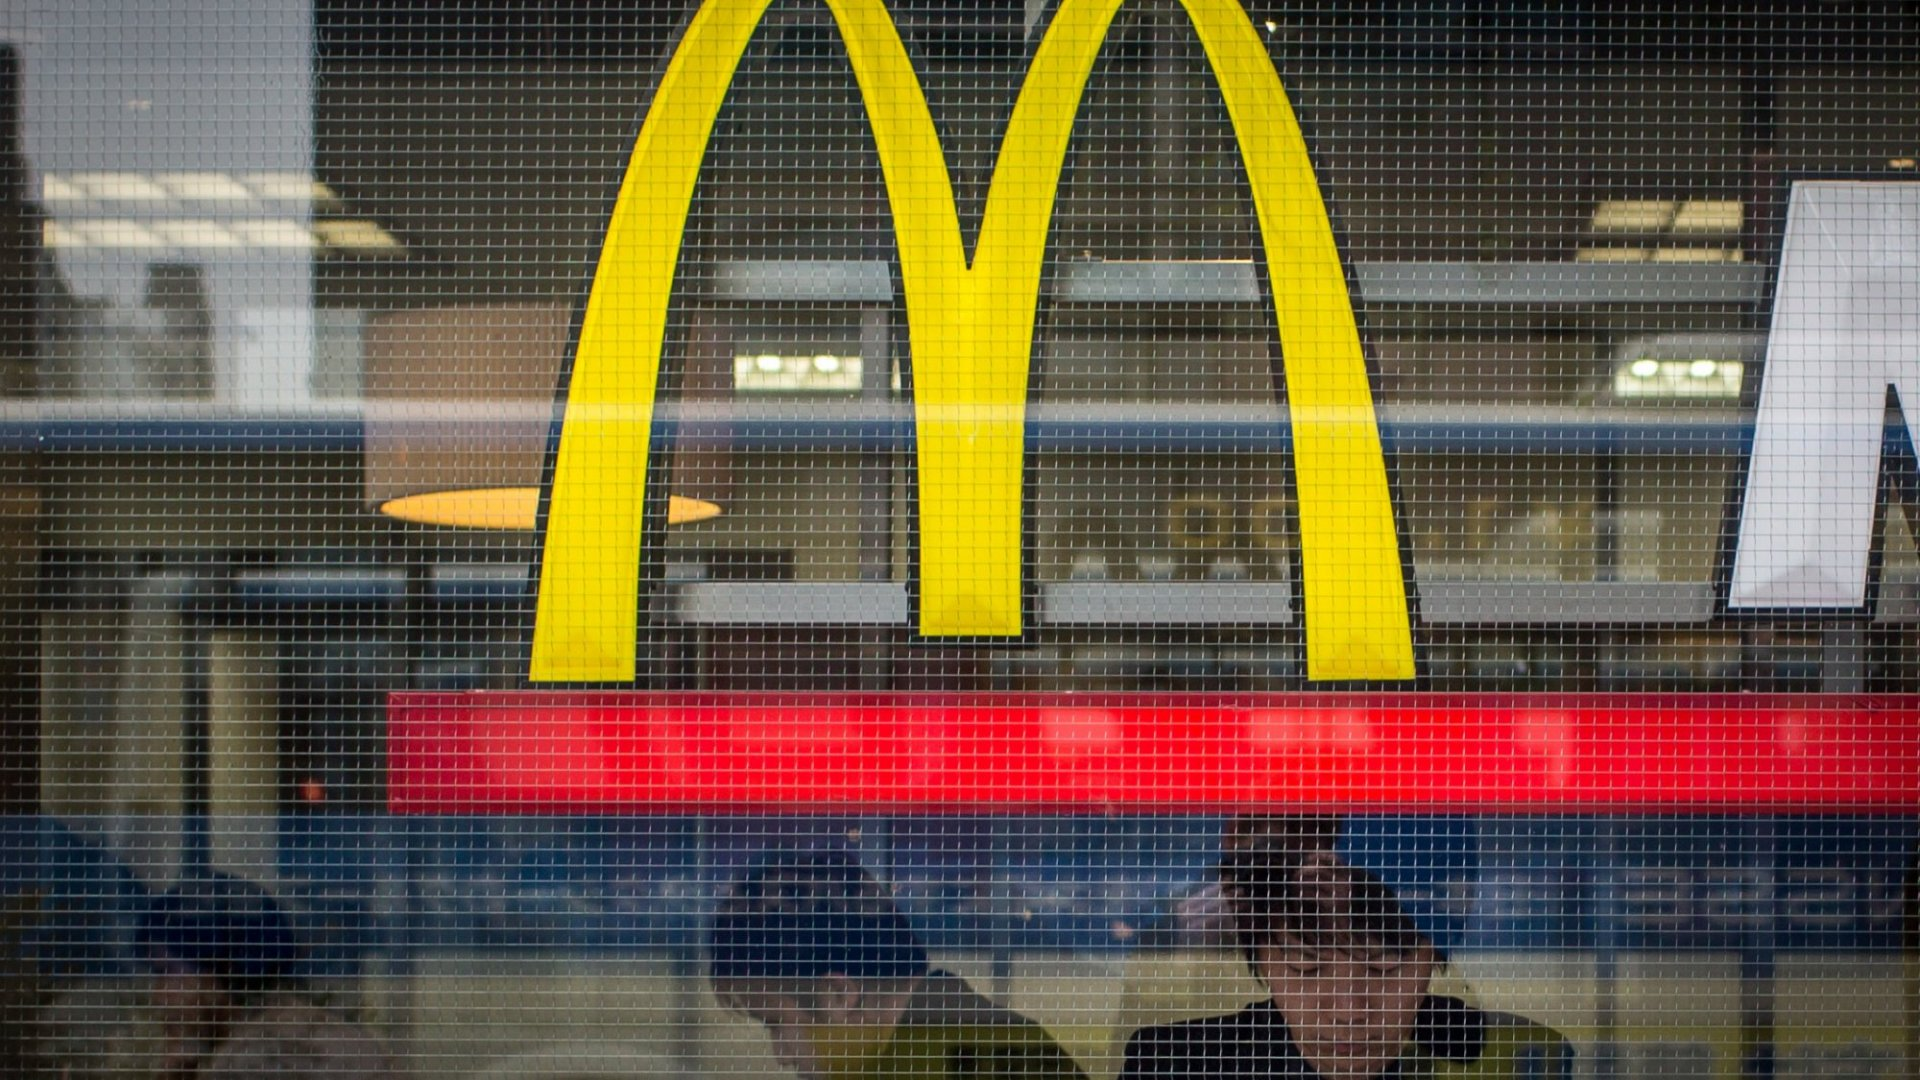 McDonald's Just Made a Huge Addition That Could Be the Biggest Deal in Its 65-Year History